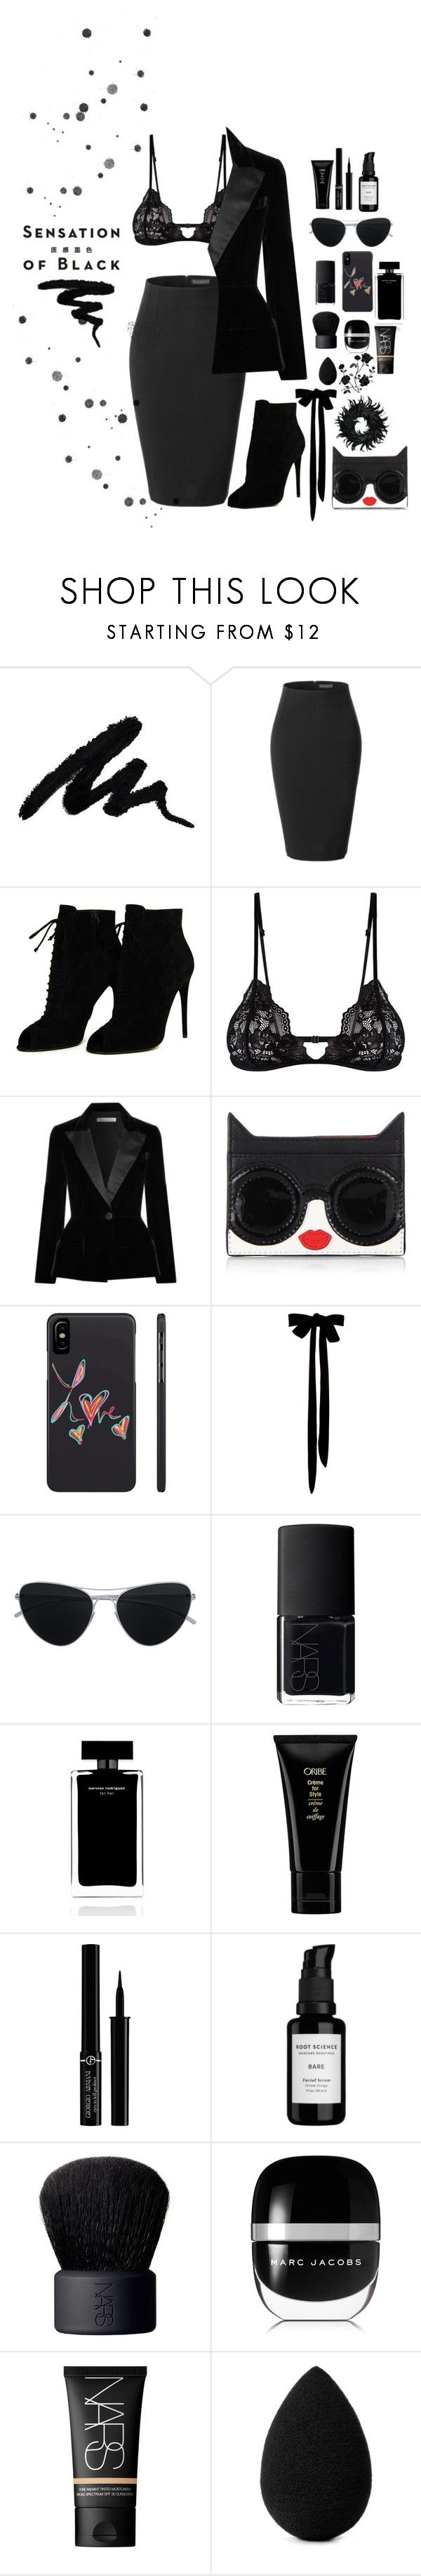 """""""Mission Monochrome: All-Black Outfit"""" by shop77spark ❤ liked on Polyvore featuring LE3NO, Vision, Tom Ford, Mosmann, Oscar de la Renta, Alice + Olivia, Mykita, NARS Cosmetics, Narciso Rodriguez and Oribe"""